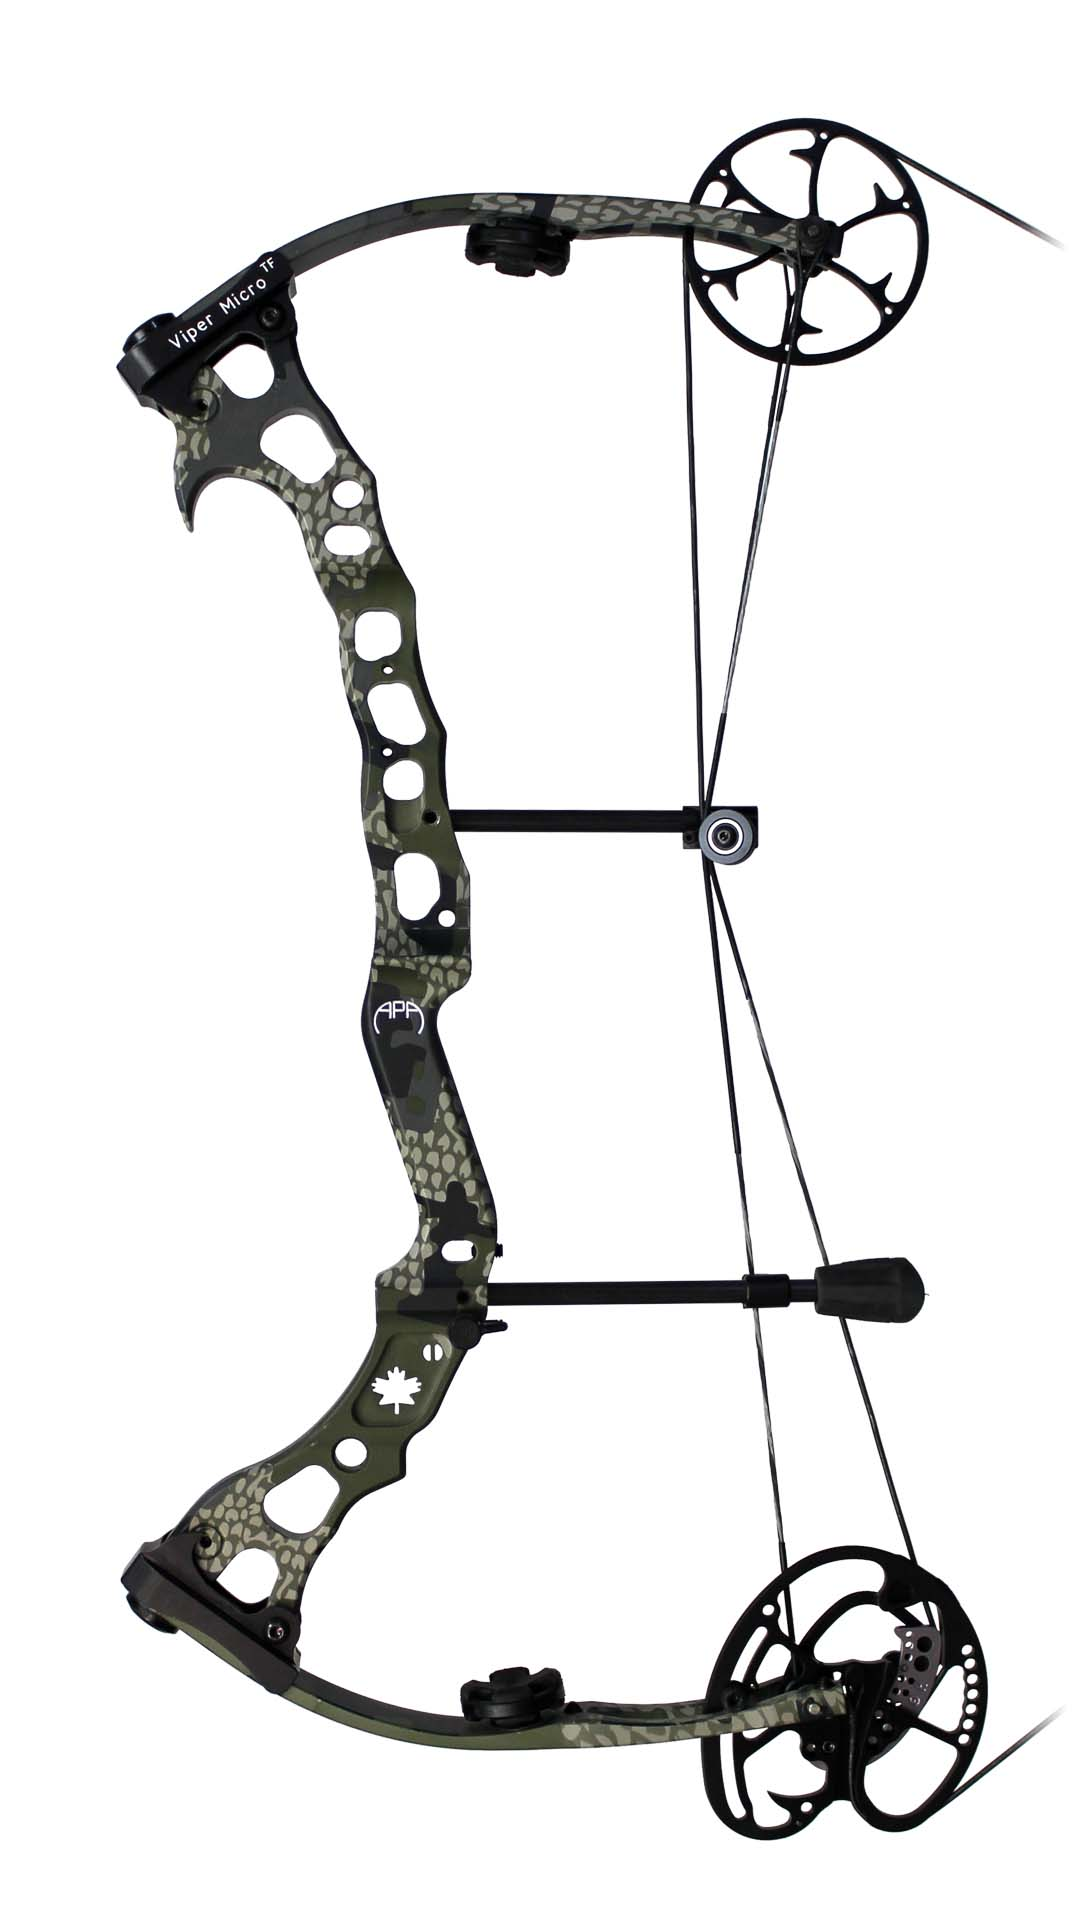 APA Viper Micro TF Compound Bow - Side View Image